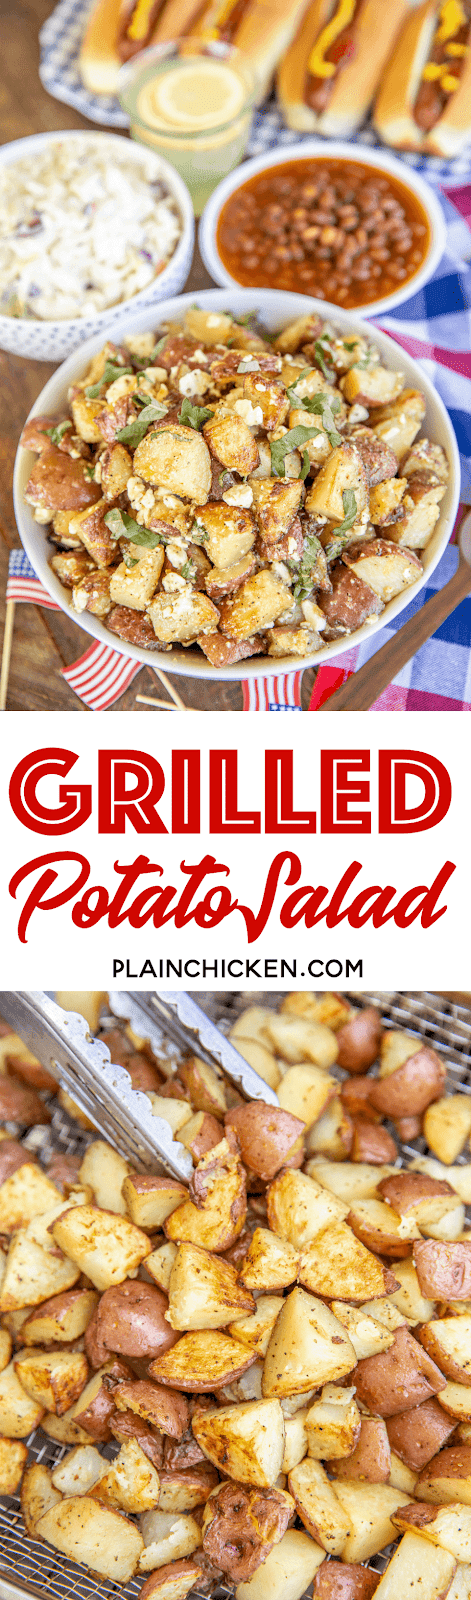 collage of 2 photos of grilled potato salad in a bowl